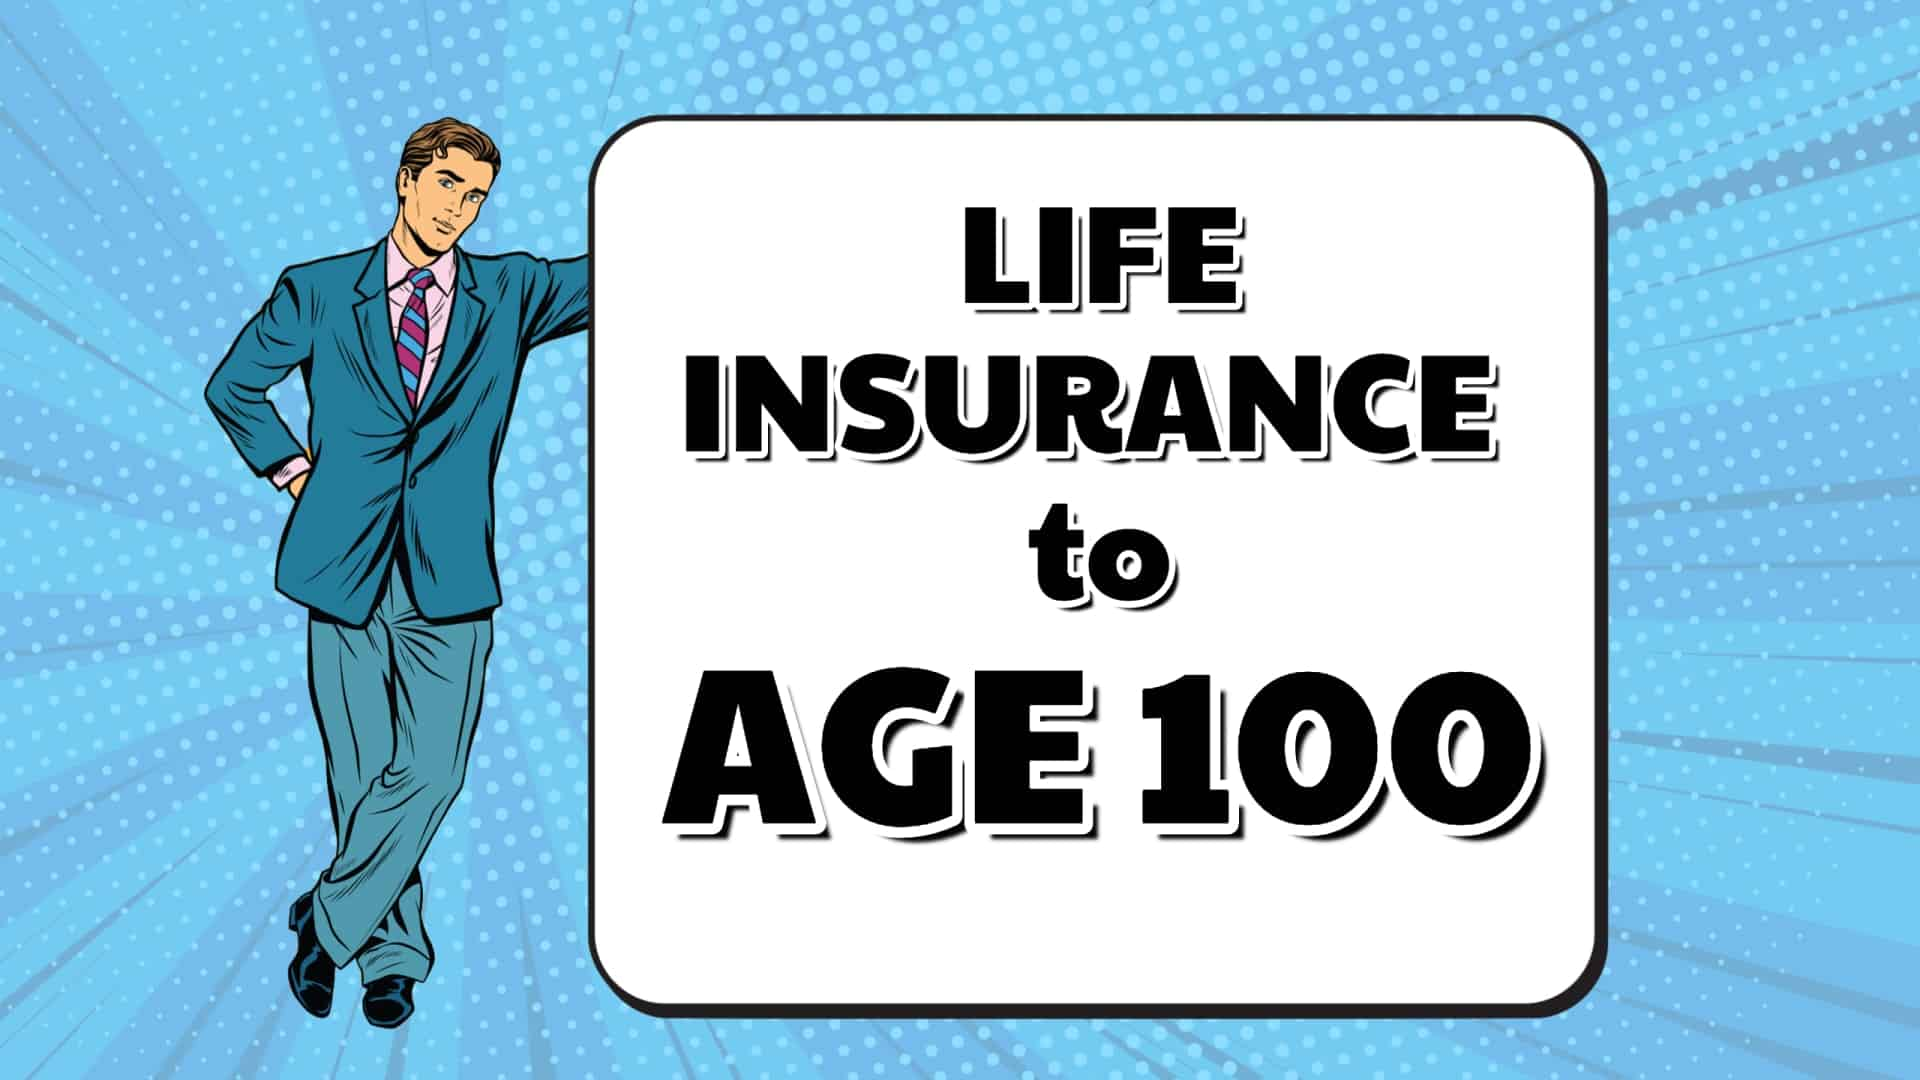 Term Life Insurance to Age 100